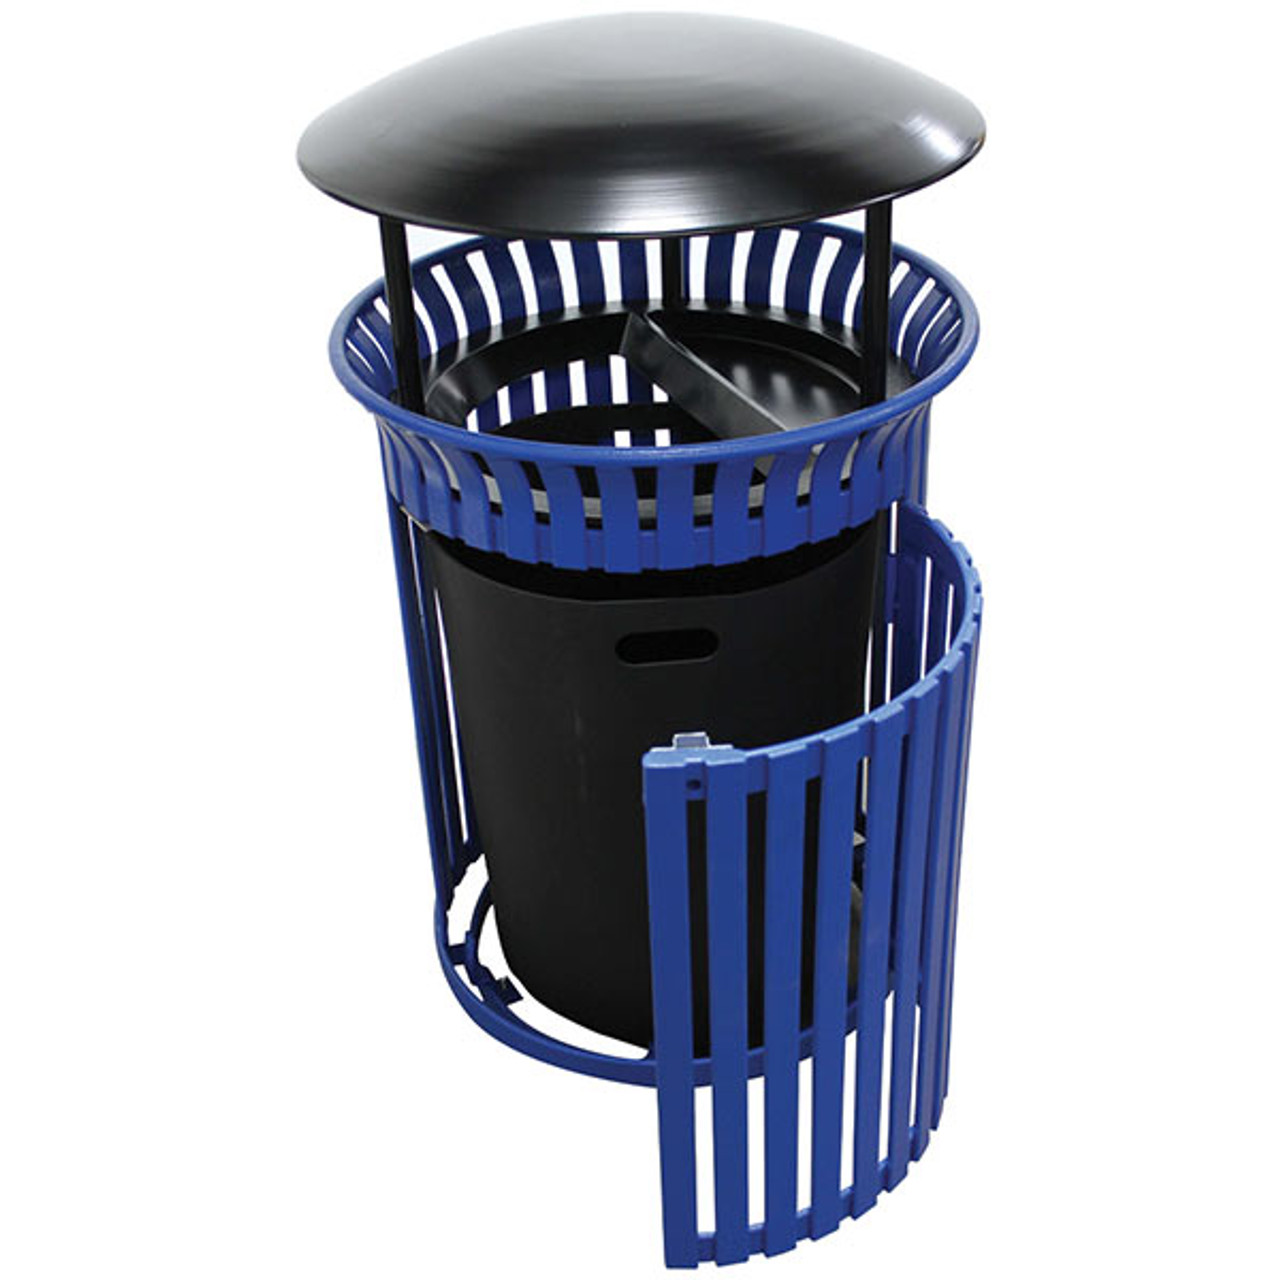 36 Gallon Outdoor Covered Ash Trash Container with Side Door MF3233